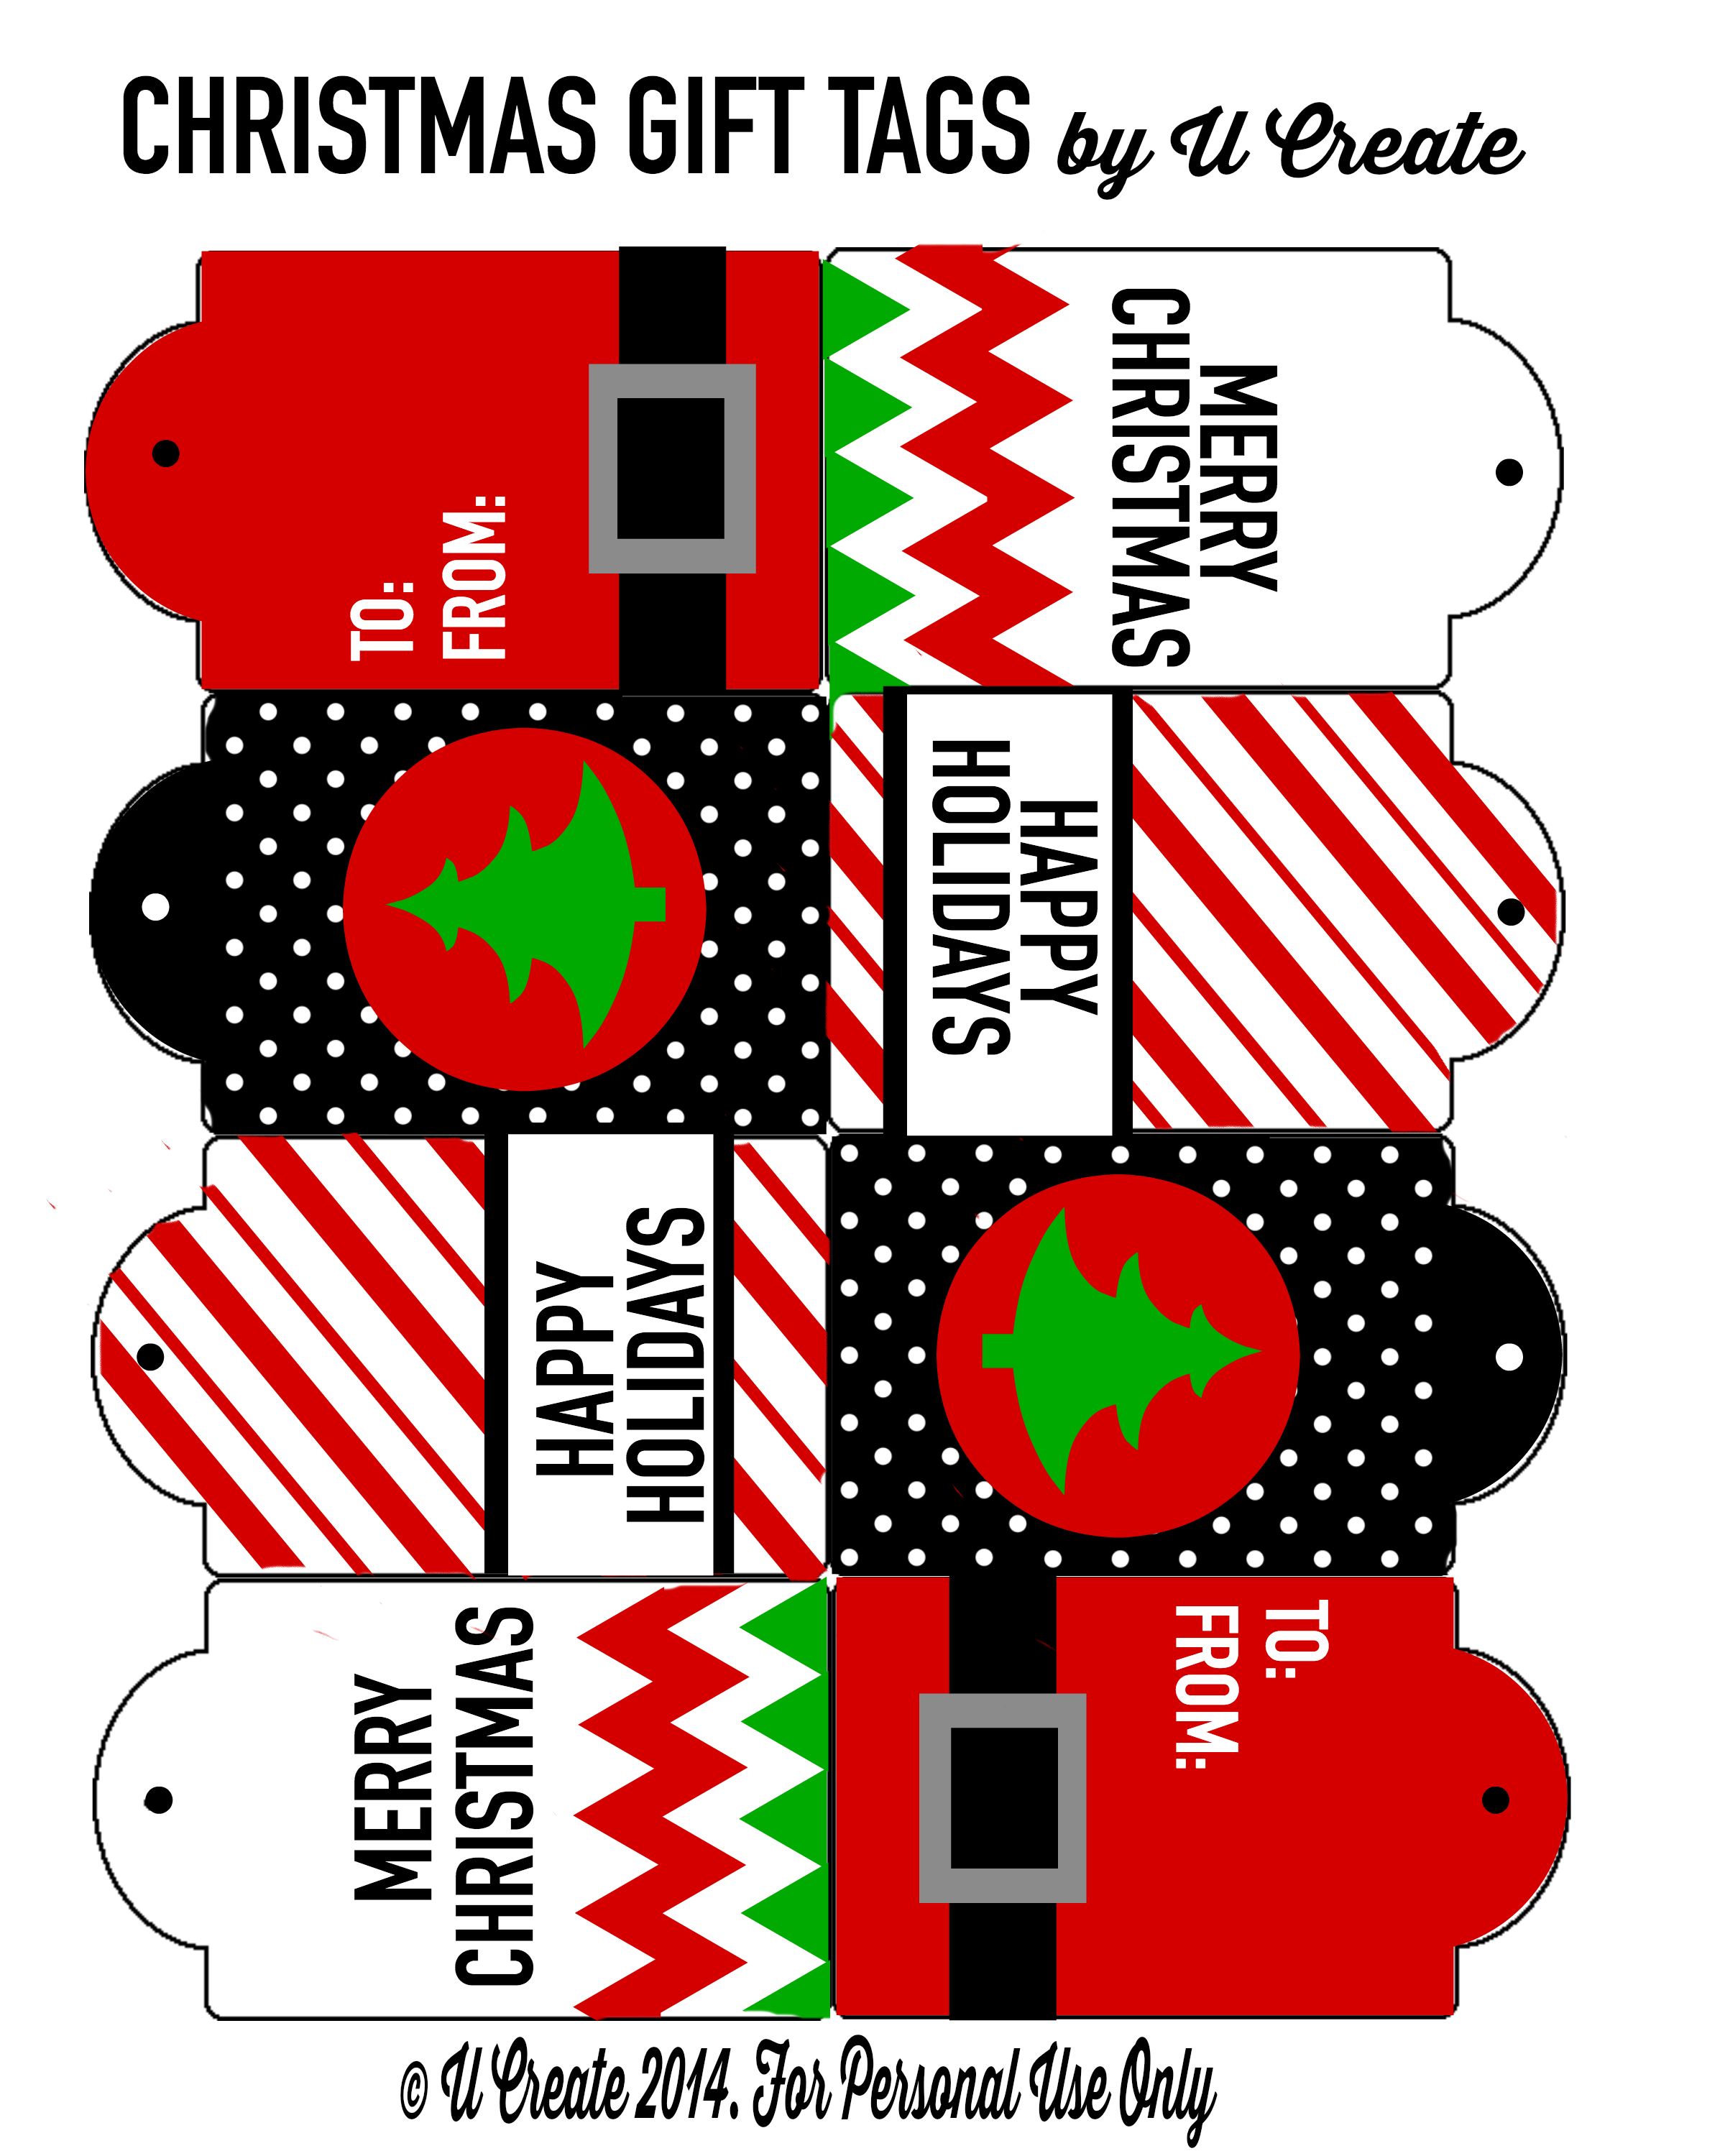 image about Christmas Tag Free Printable named Totally free Printable Xmas Tags - U Build